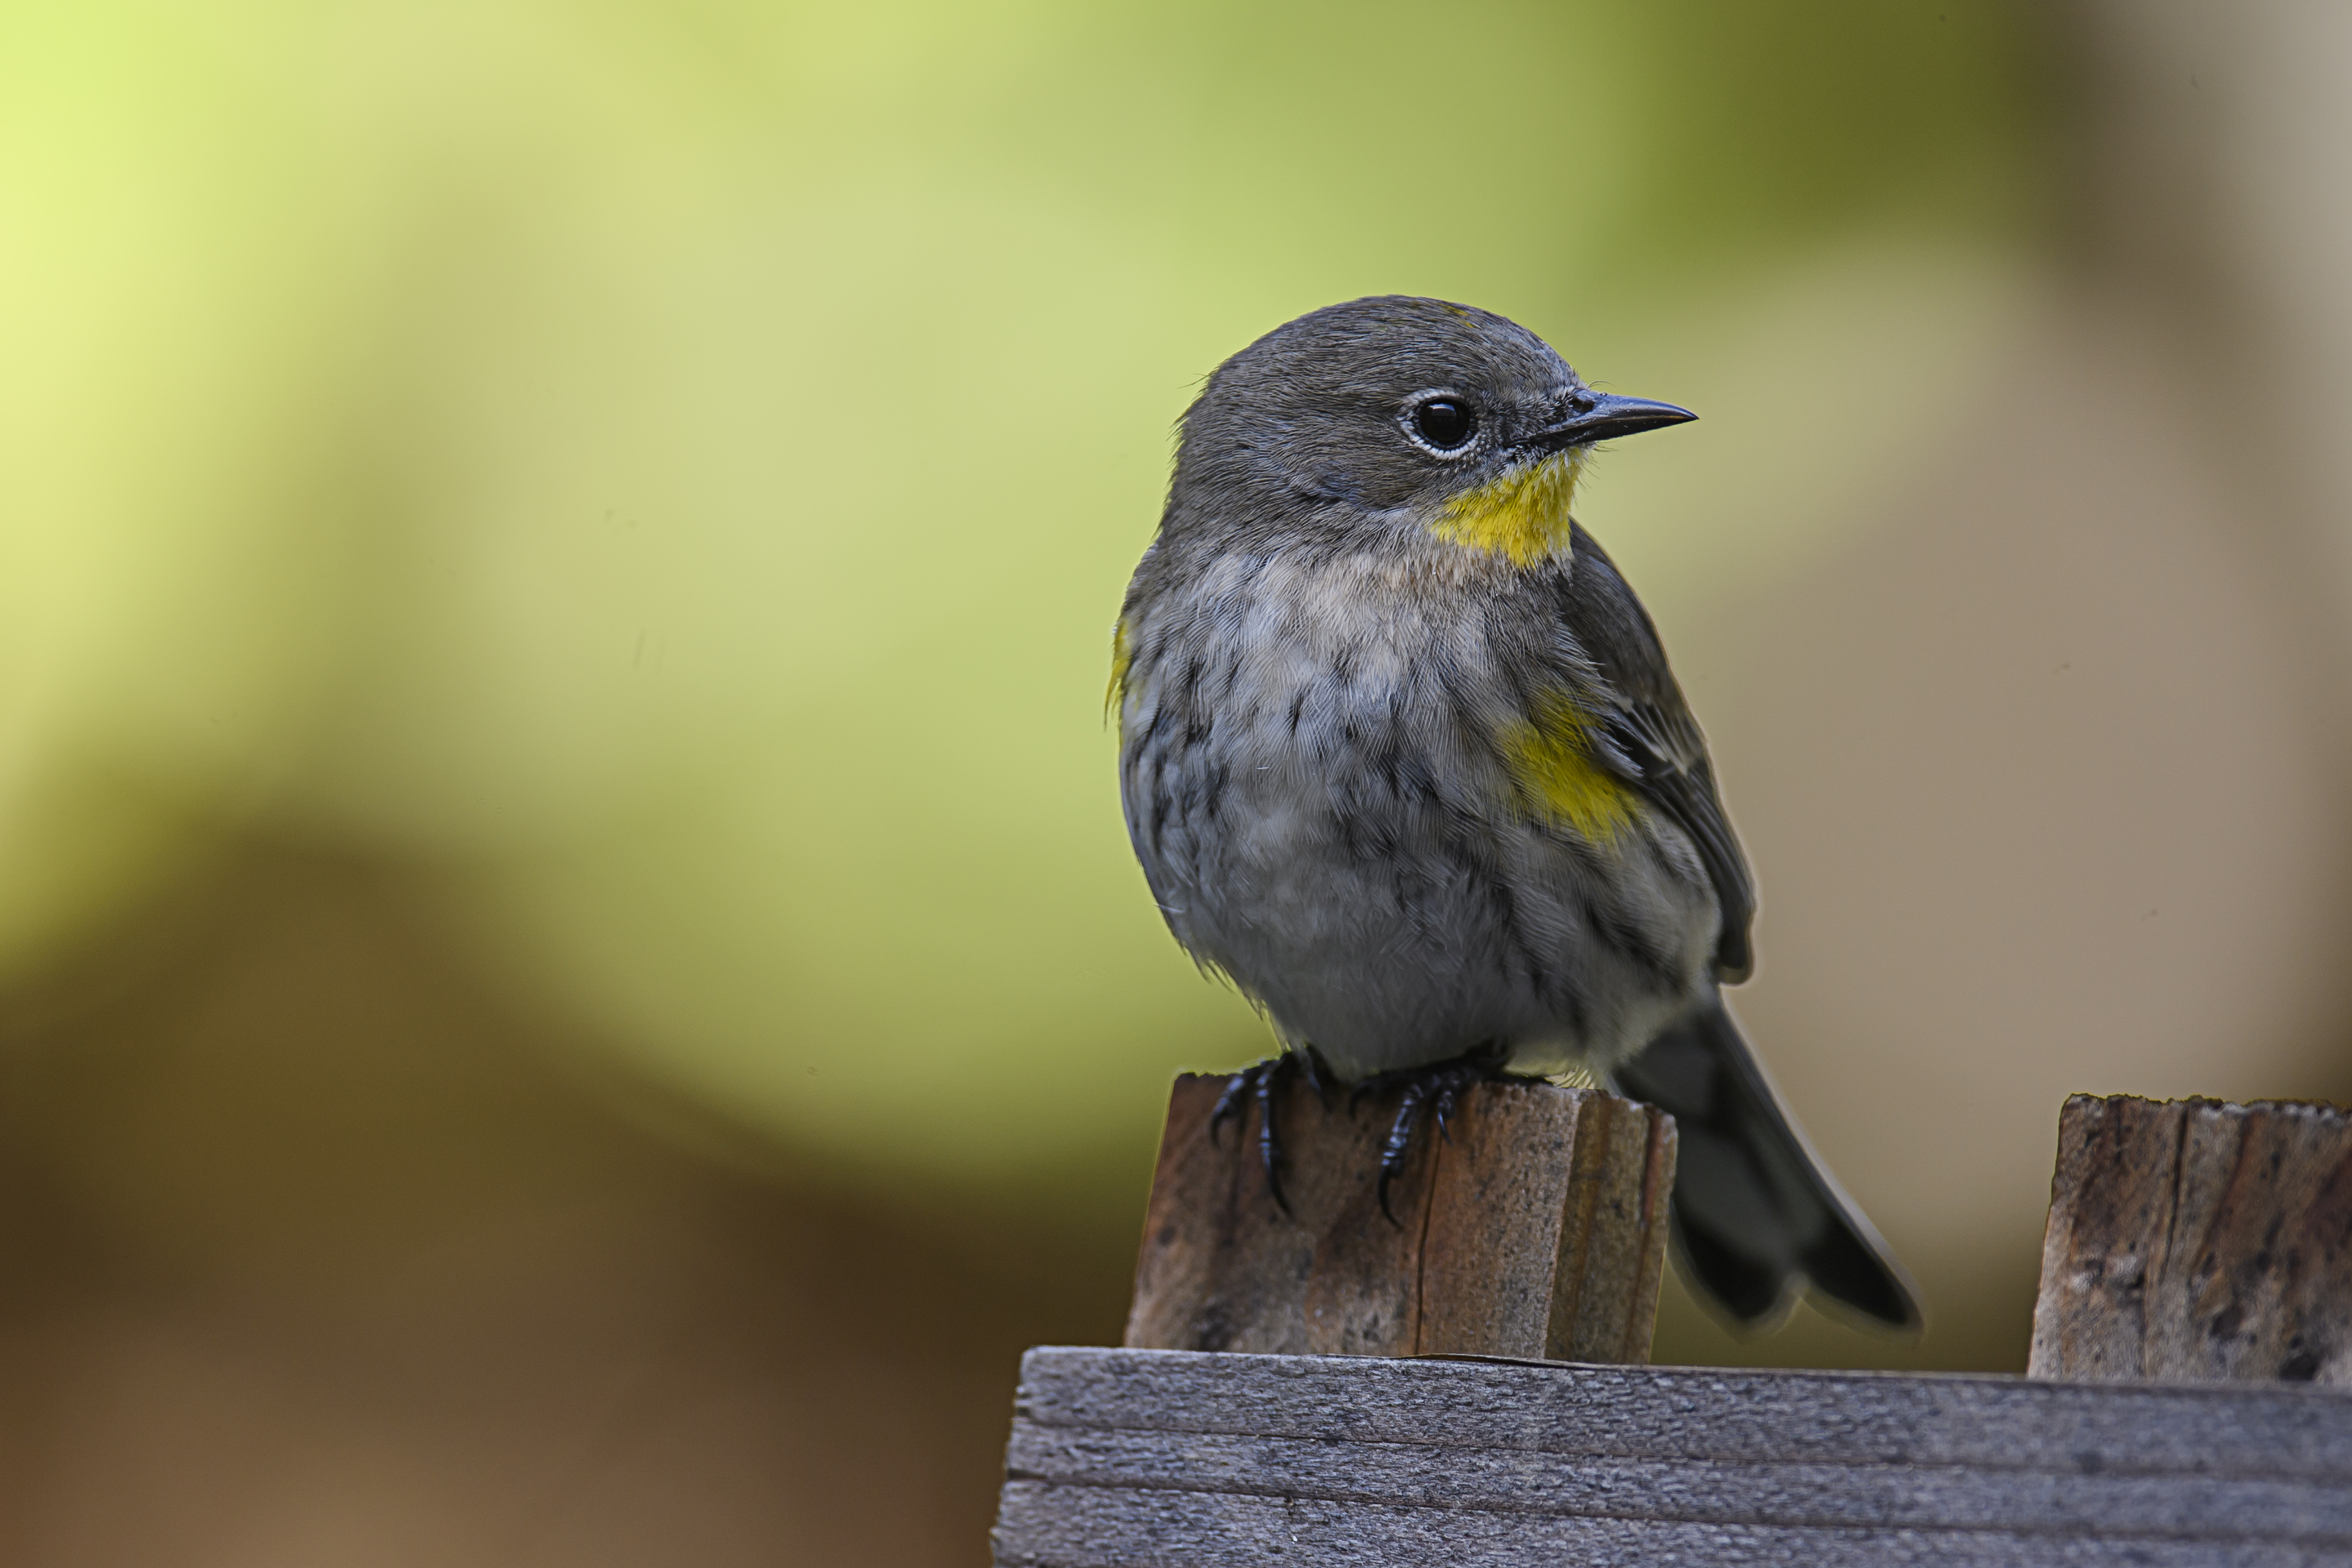 yellow-rump-perched